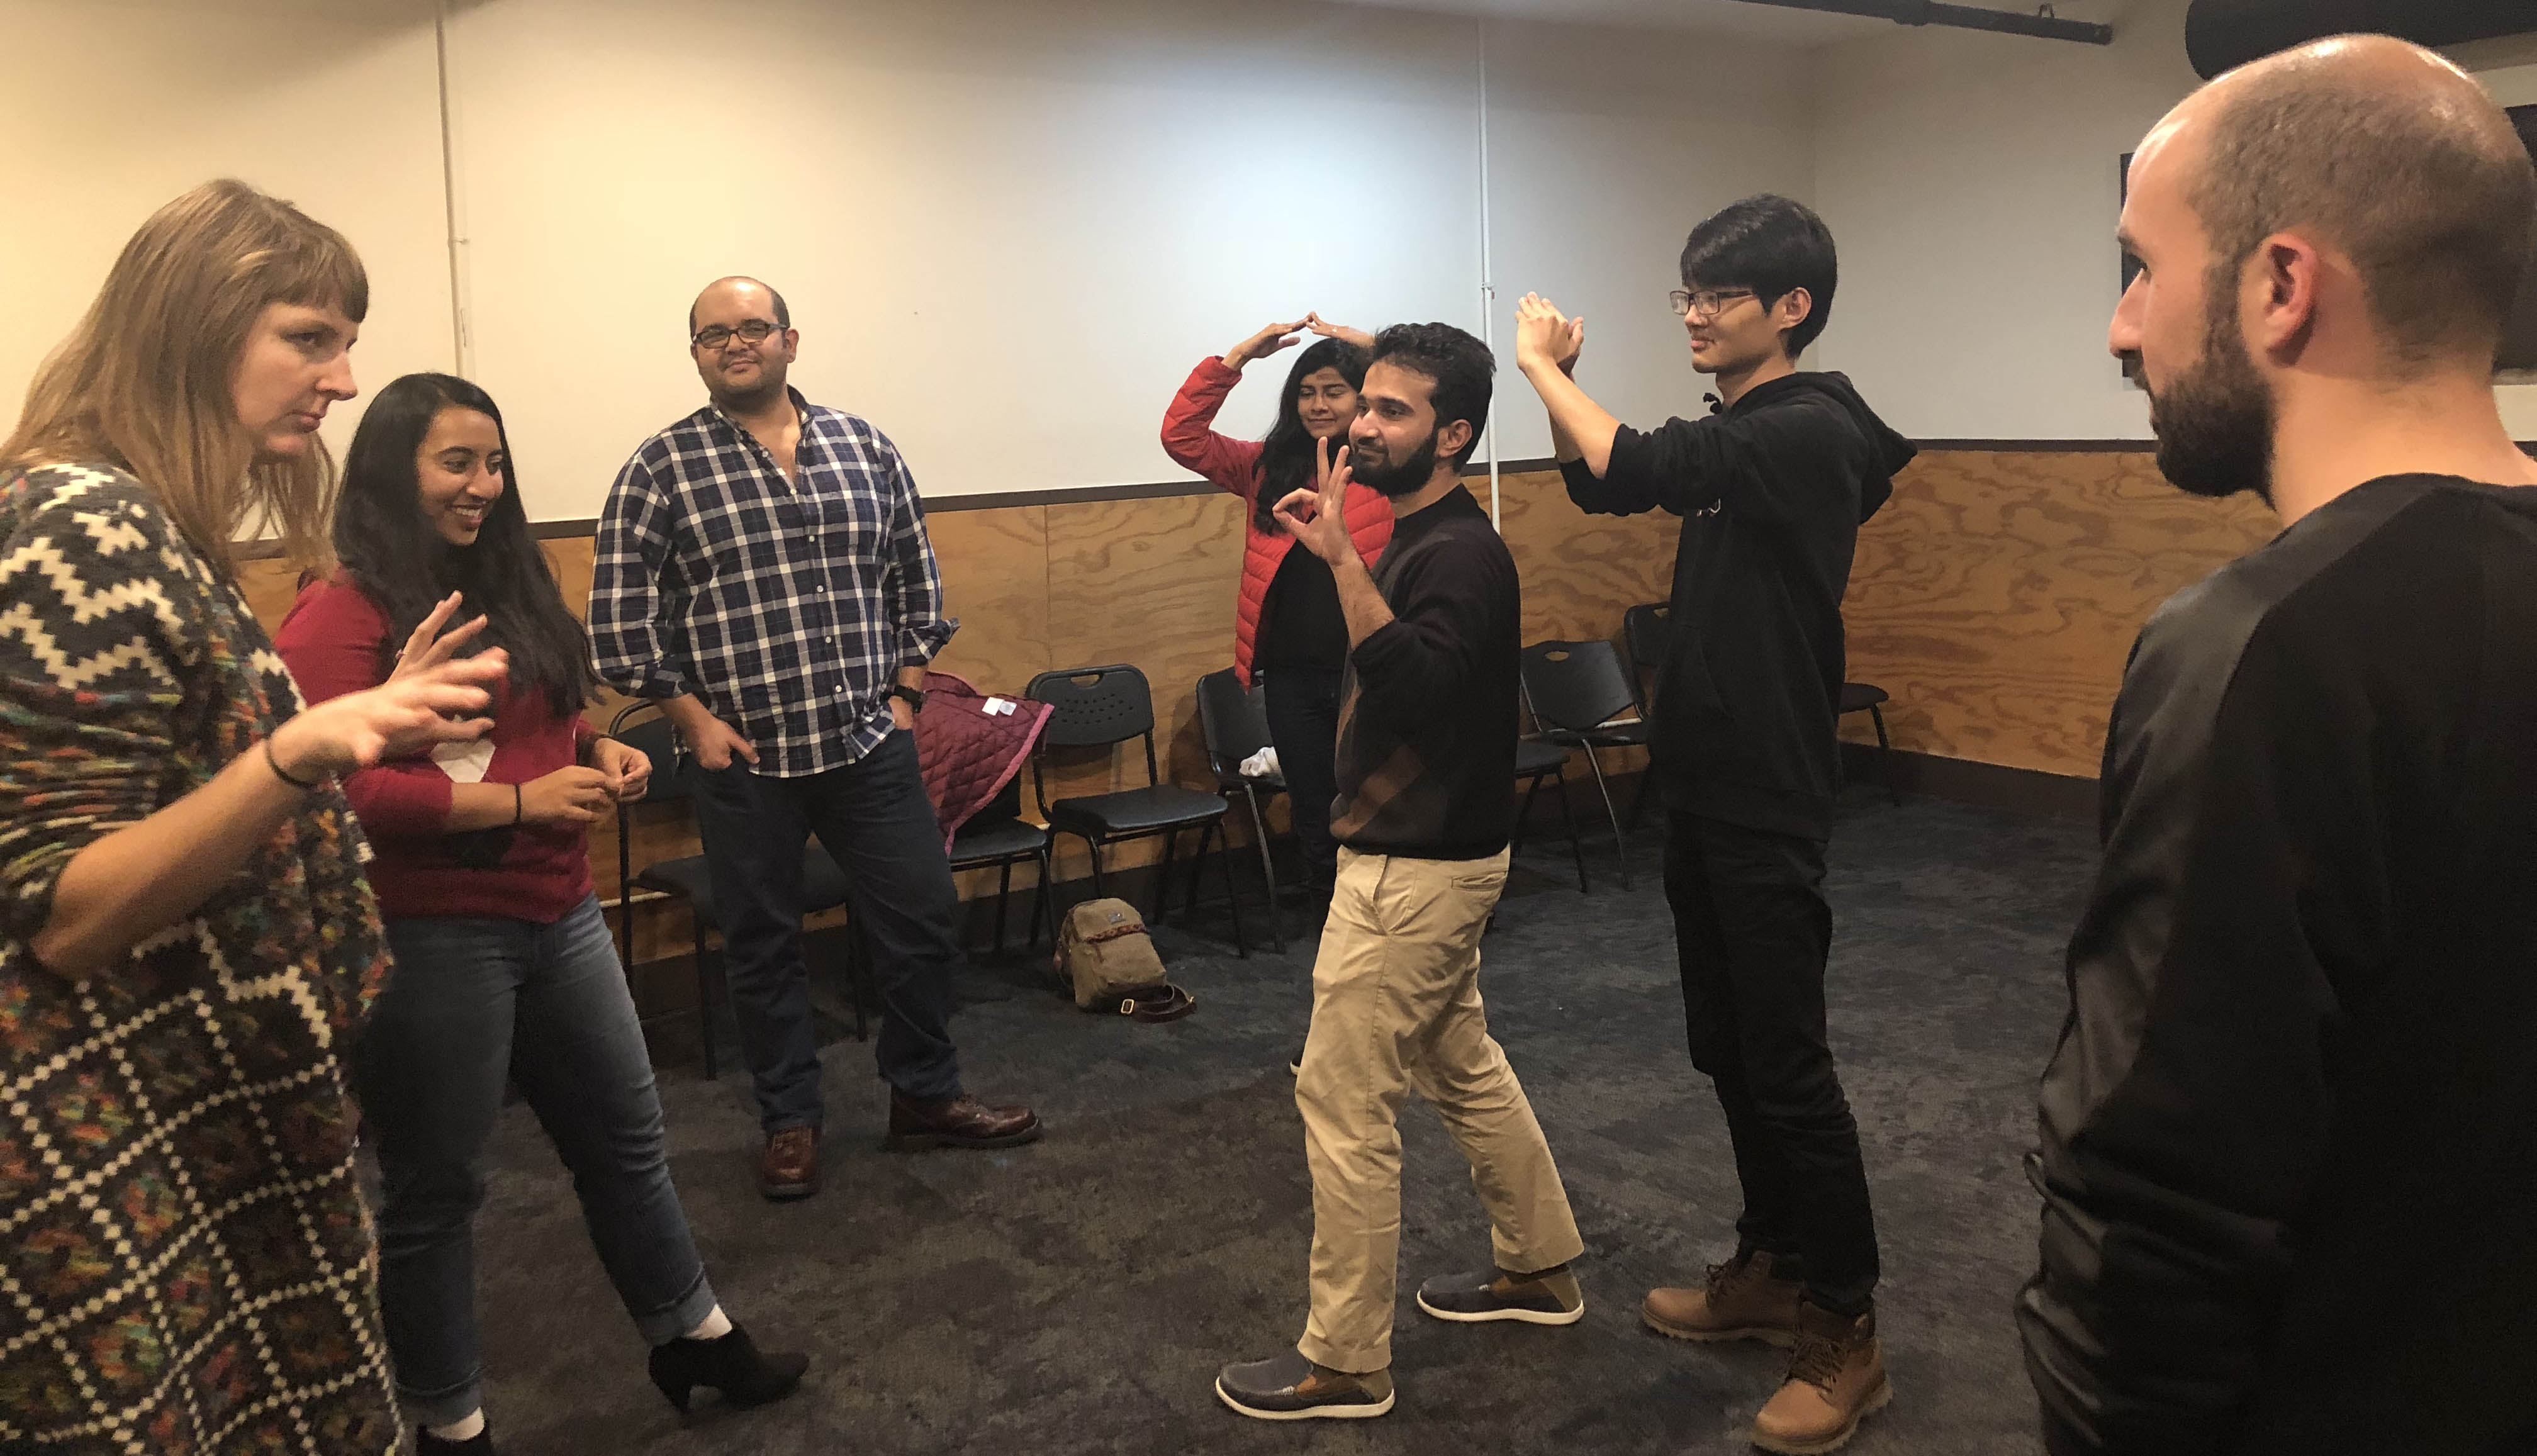 A teacher from The Second City with a group of international LBJ master's degree students during an improv workshop in Chicago